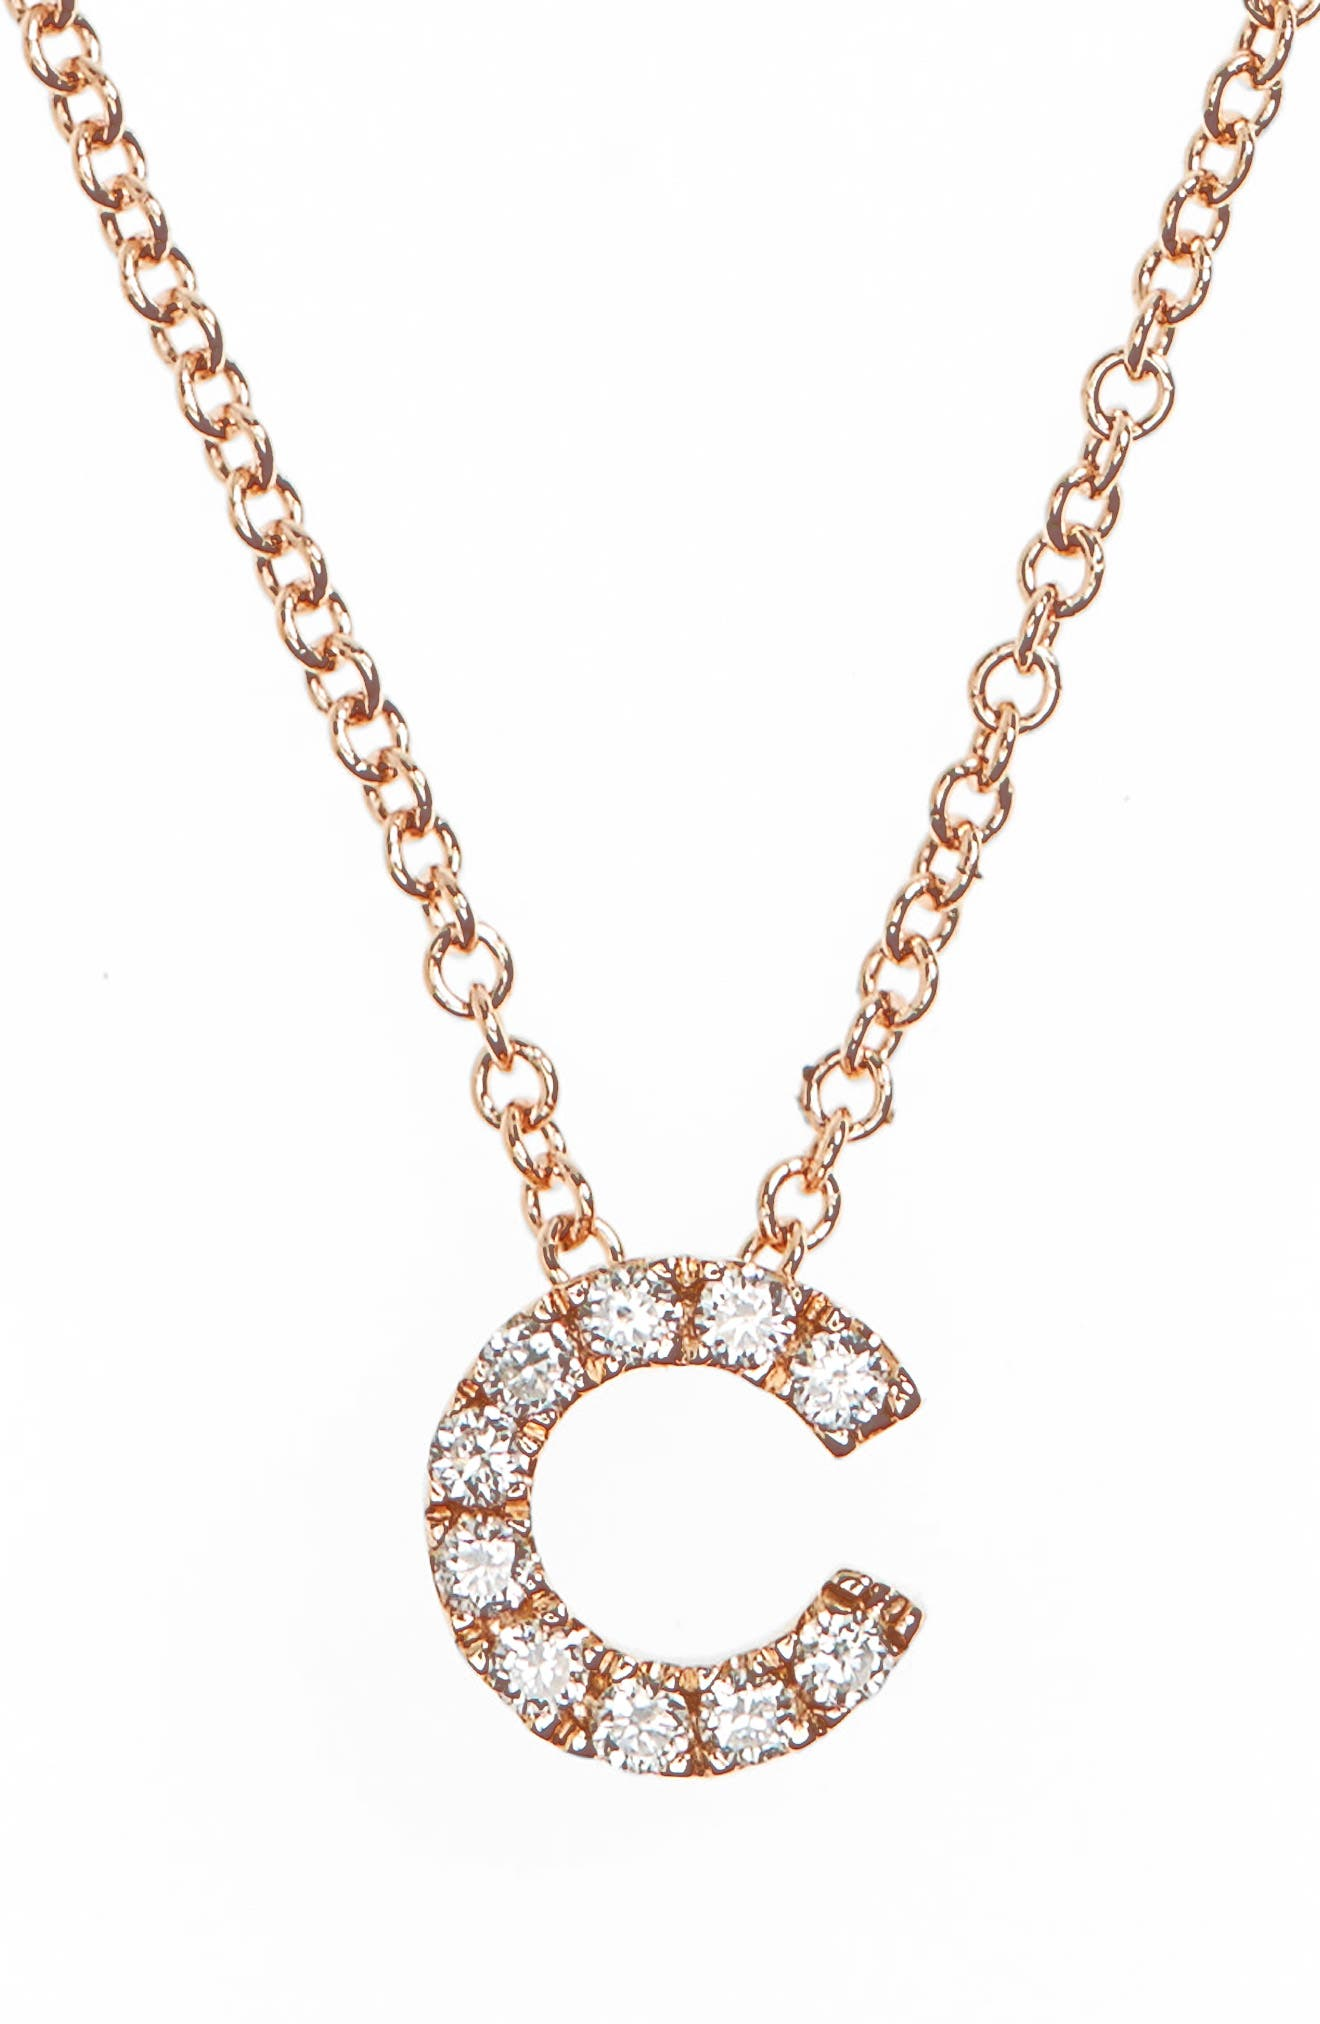 18k Gold Pavé Diamond Initial Pendant Necklace,                             Main thumbnail 1, color,                             ROSE GOLD - C